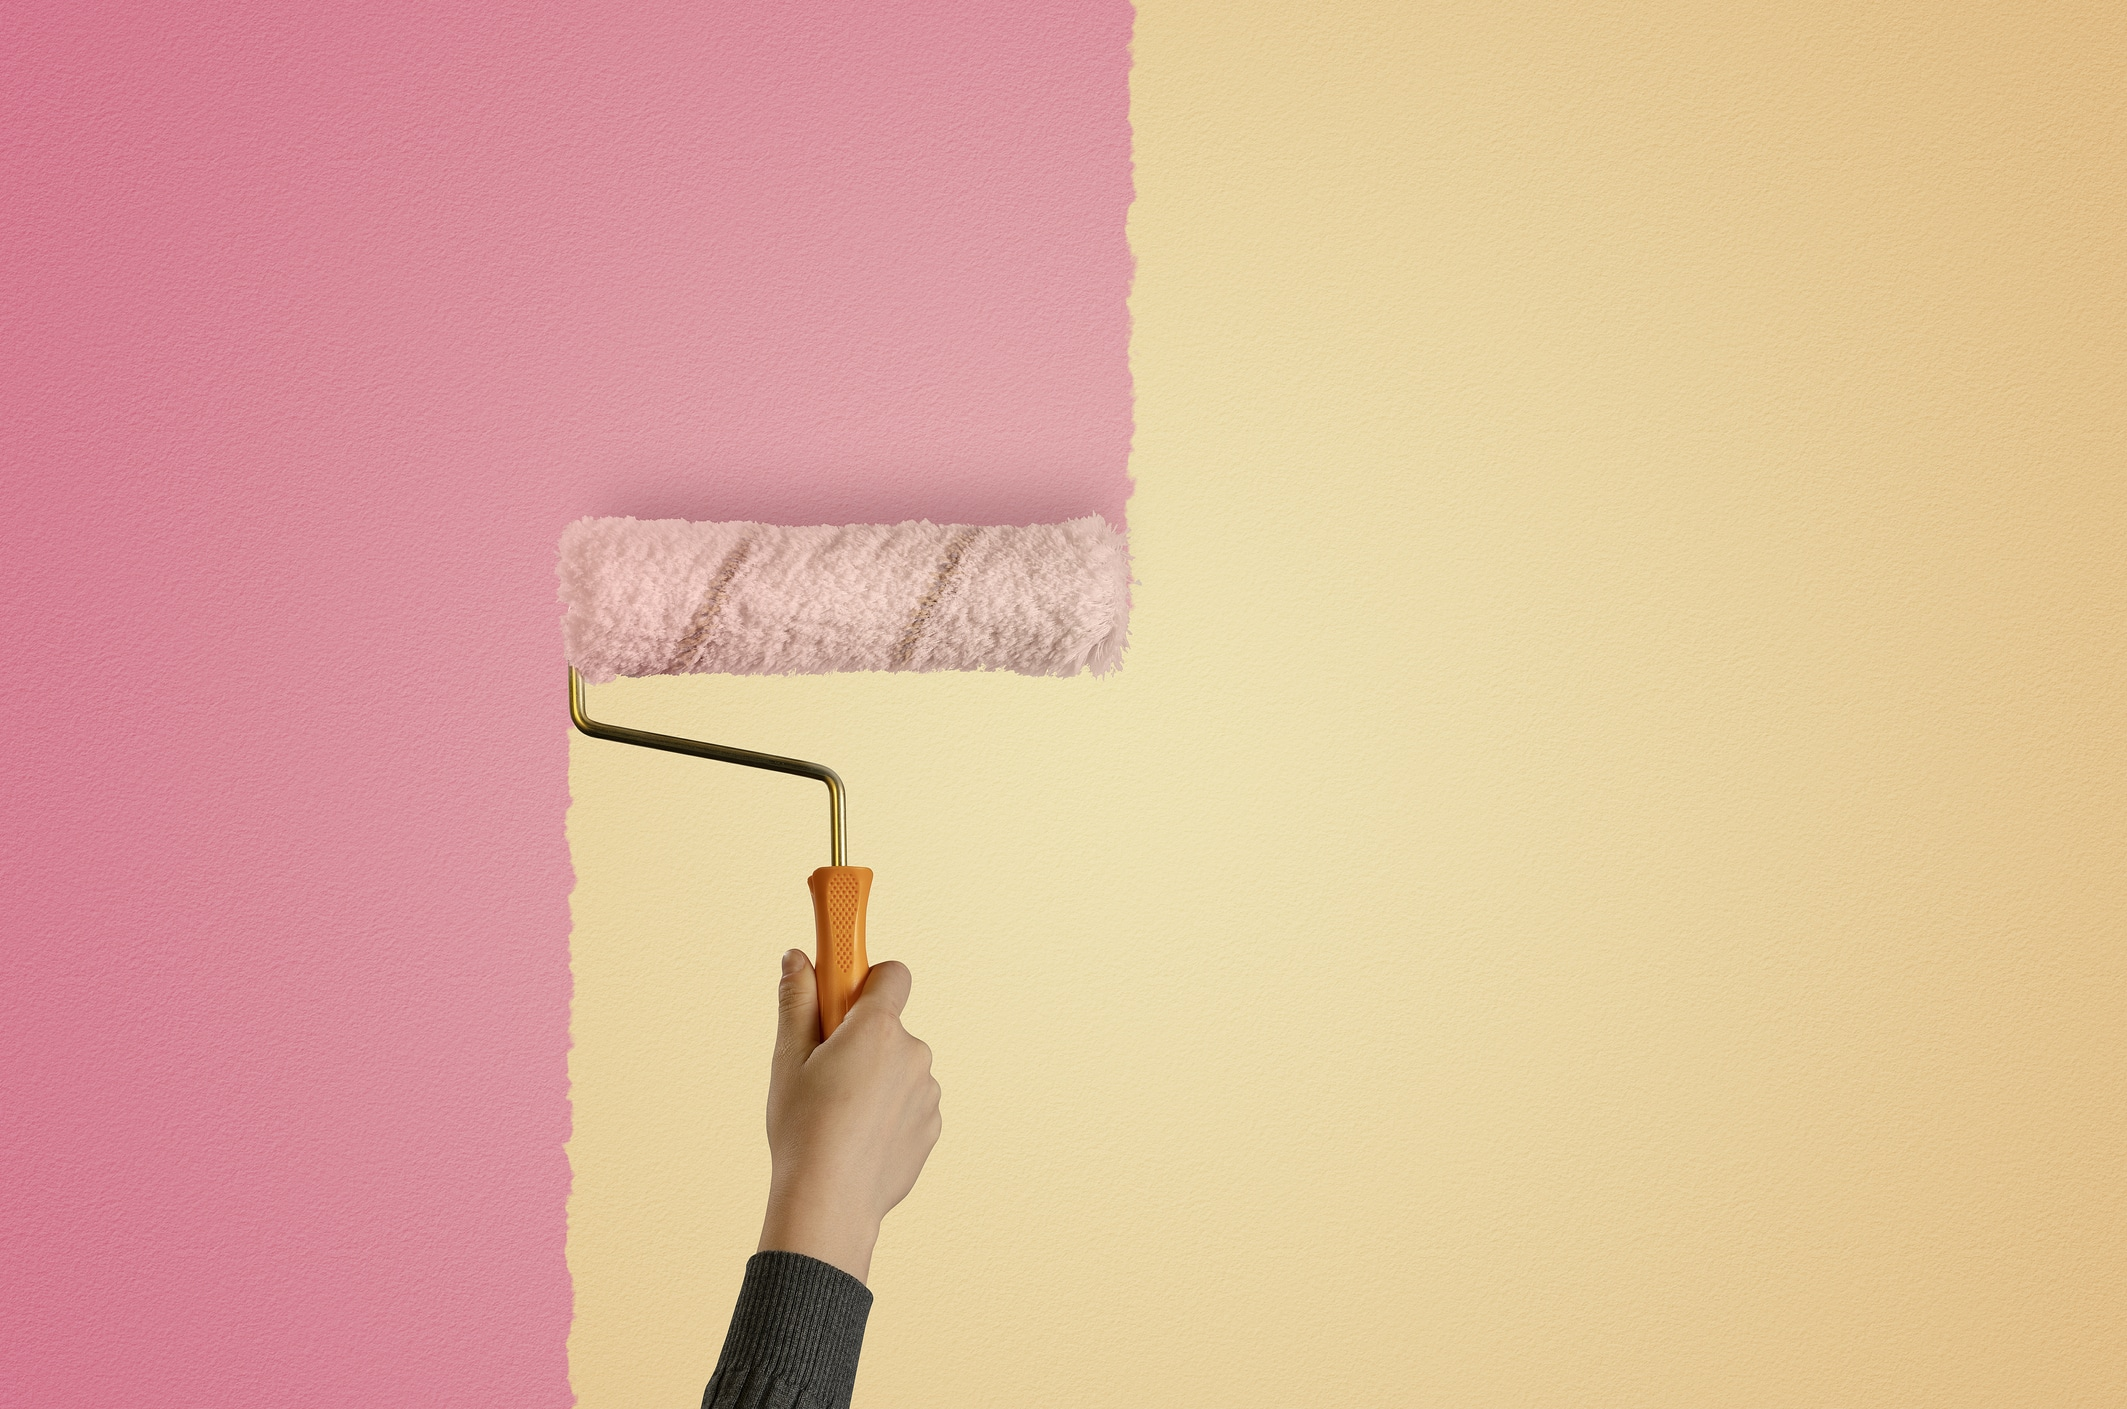 DIY, Home Improvement, Renovation, Paint Roller, Wall - Building Feature